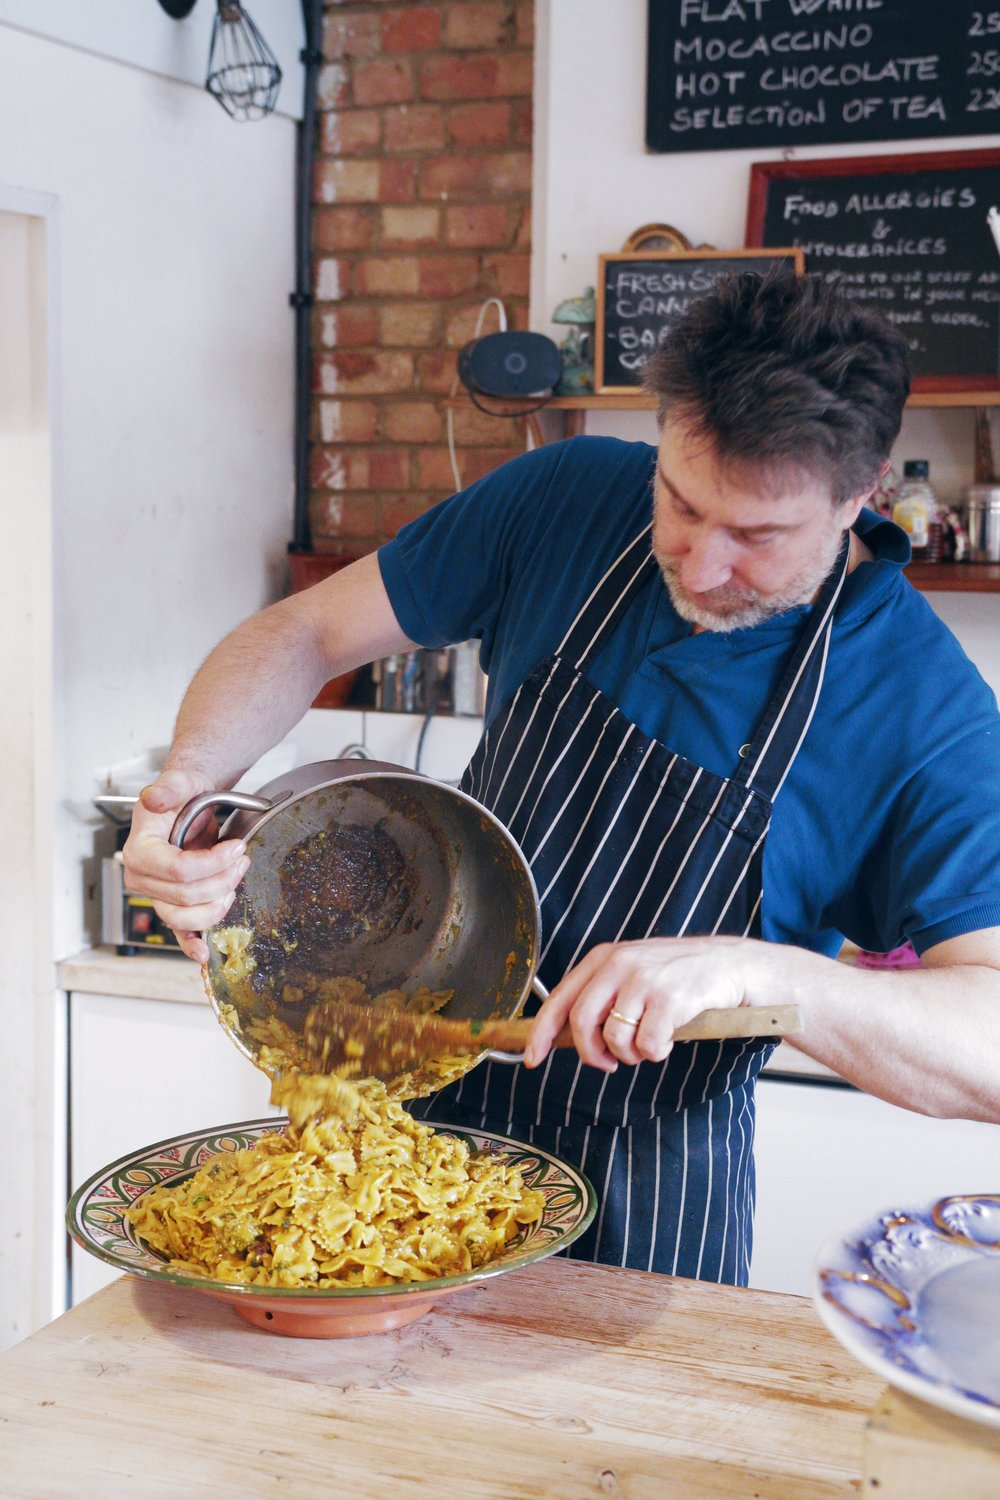 Giuseppe serving up a delicious Sicilian pasta recipe.  Photography by Vlad Muko.